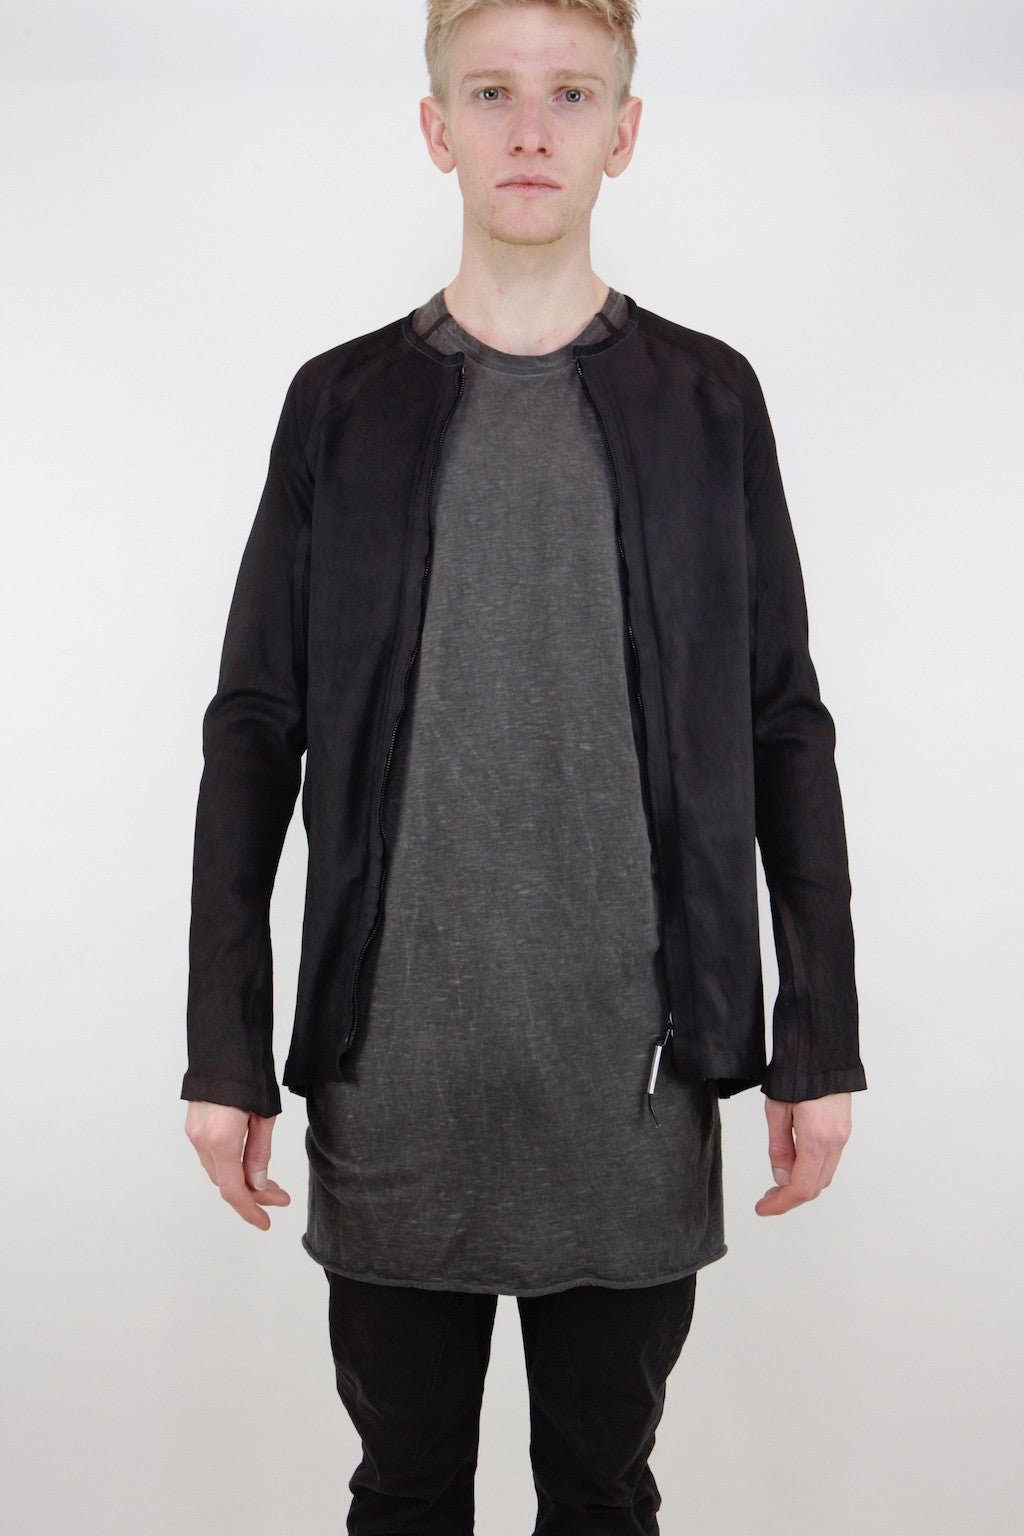 segmente stretch shirt jacket